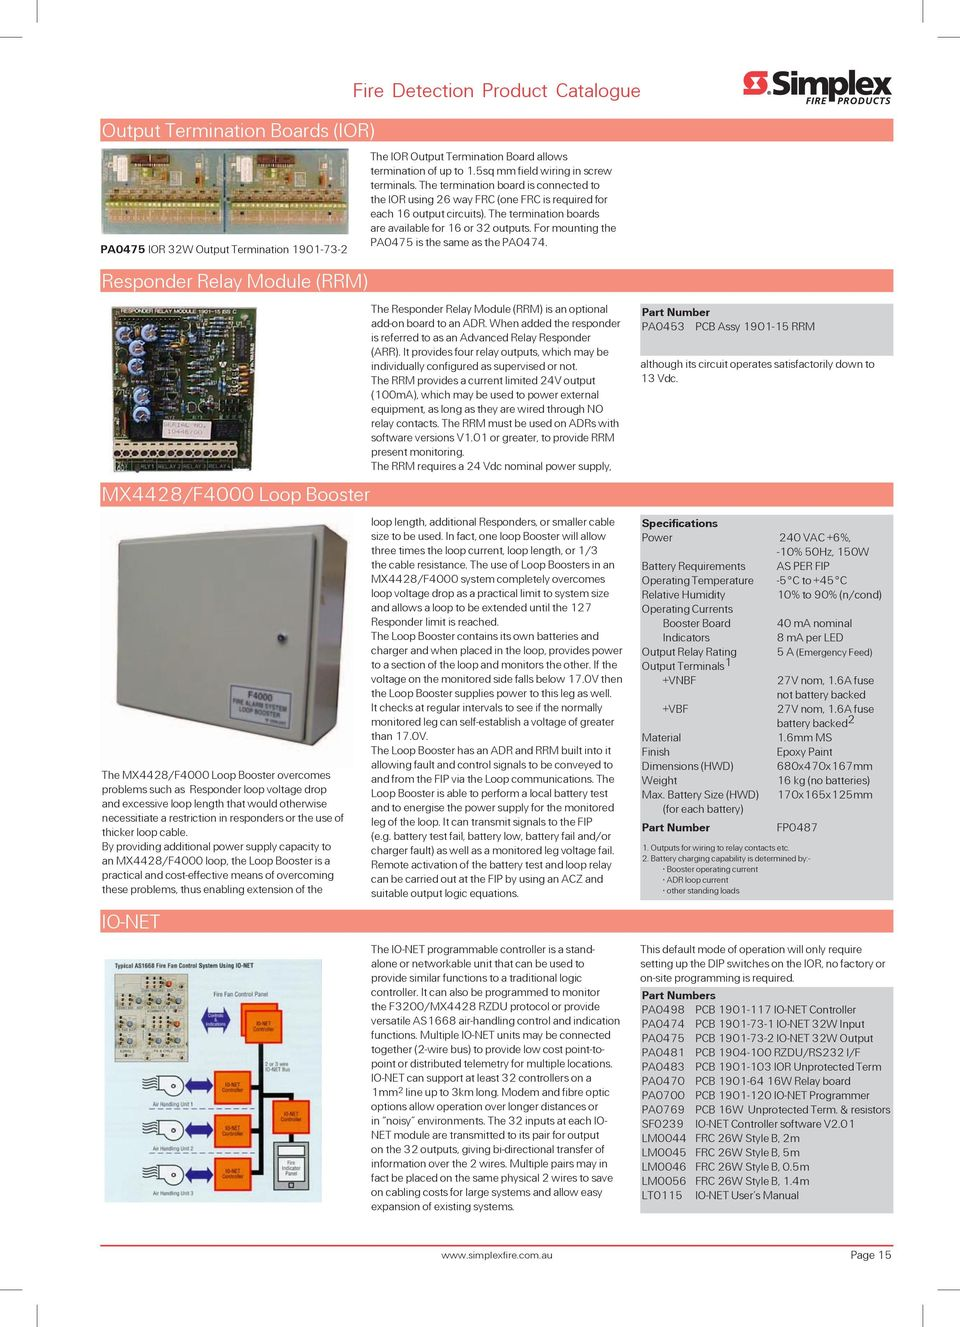 Fire Detection Australia Product Catalogue Issue 2 Pdf System Ebl128 Panasonic Electric Works Europe Ag By Providing Additional Power Supply Capacity To An Mx4428 F4000 Loop The Booster